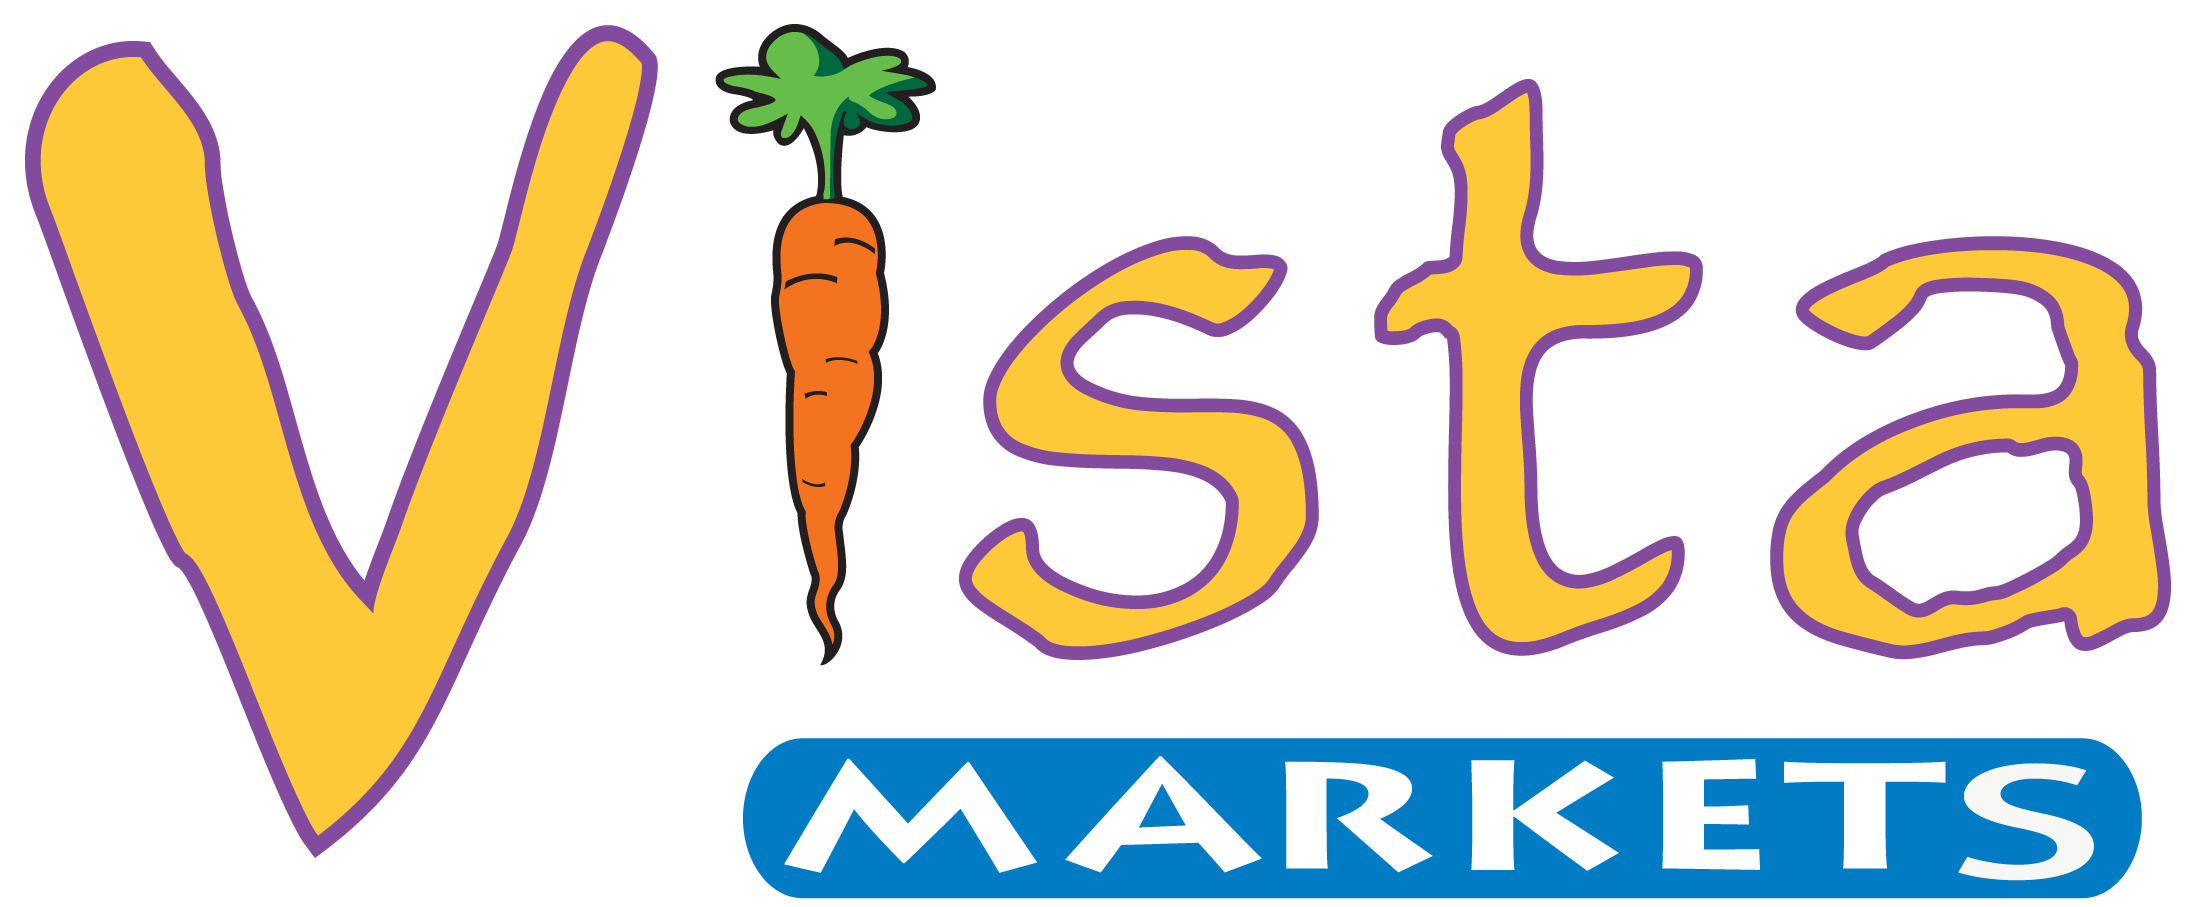 Vista Super Markets